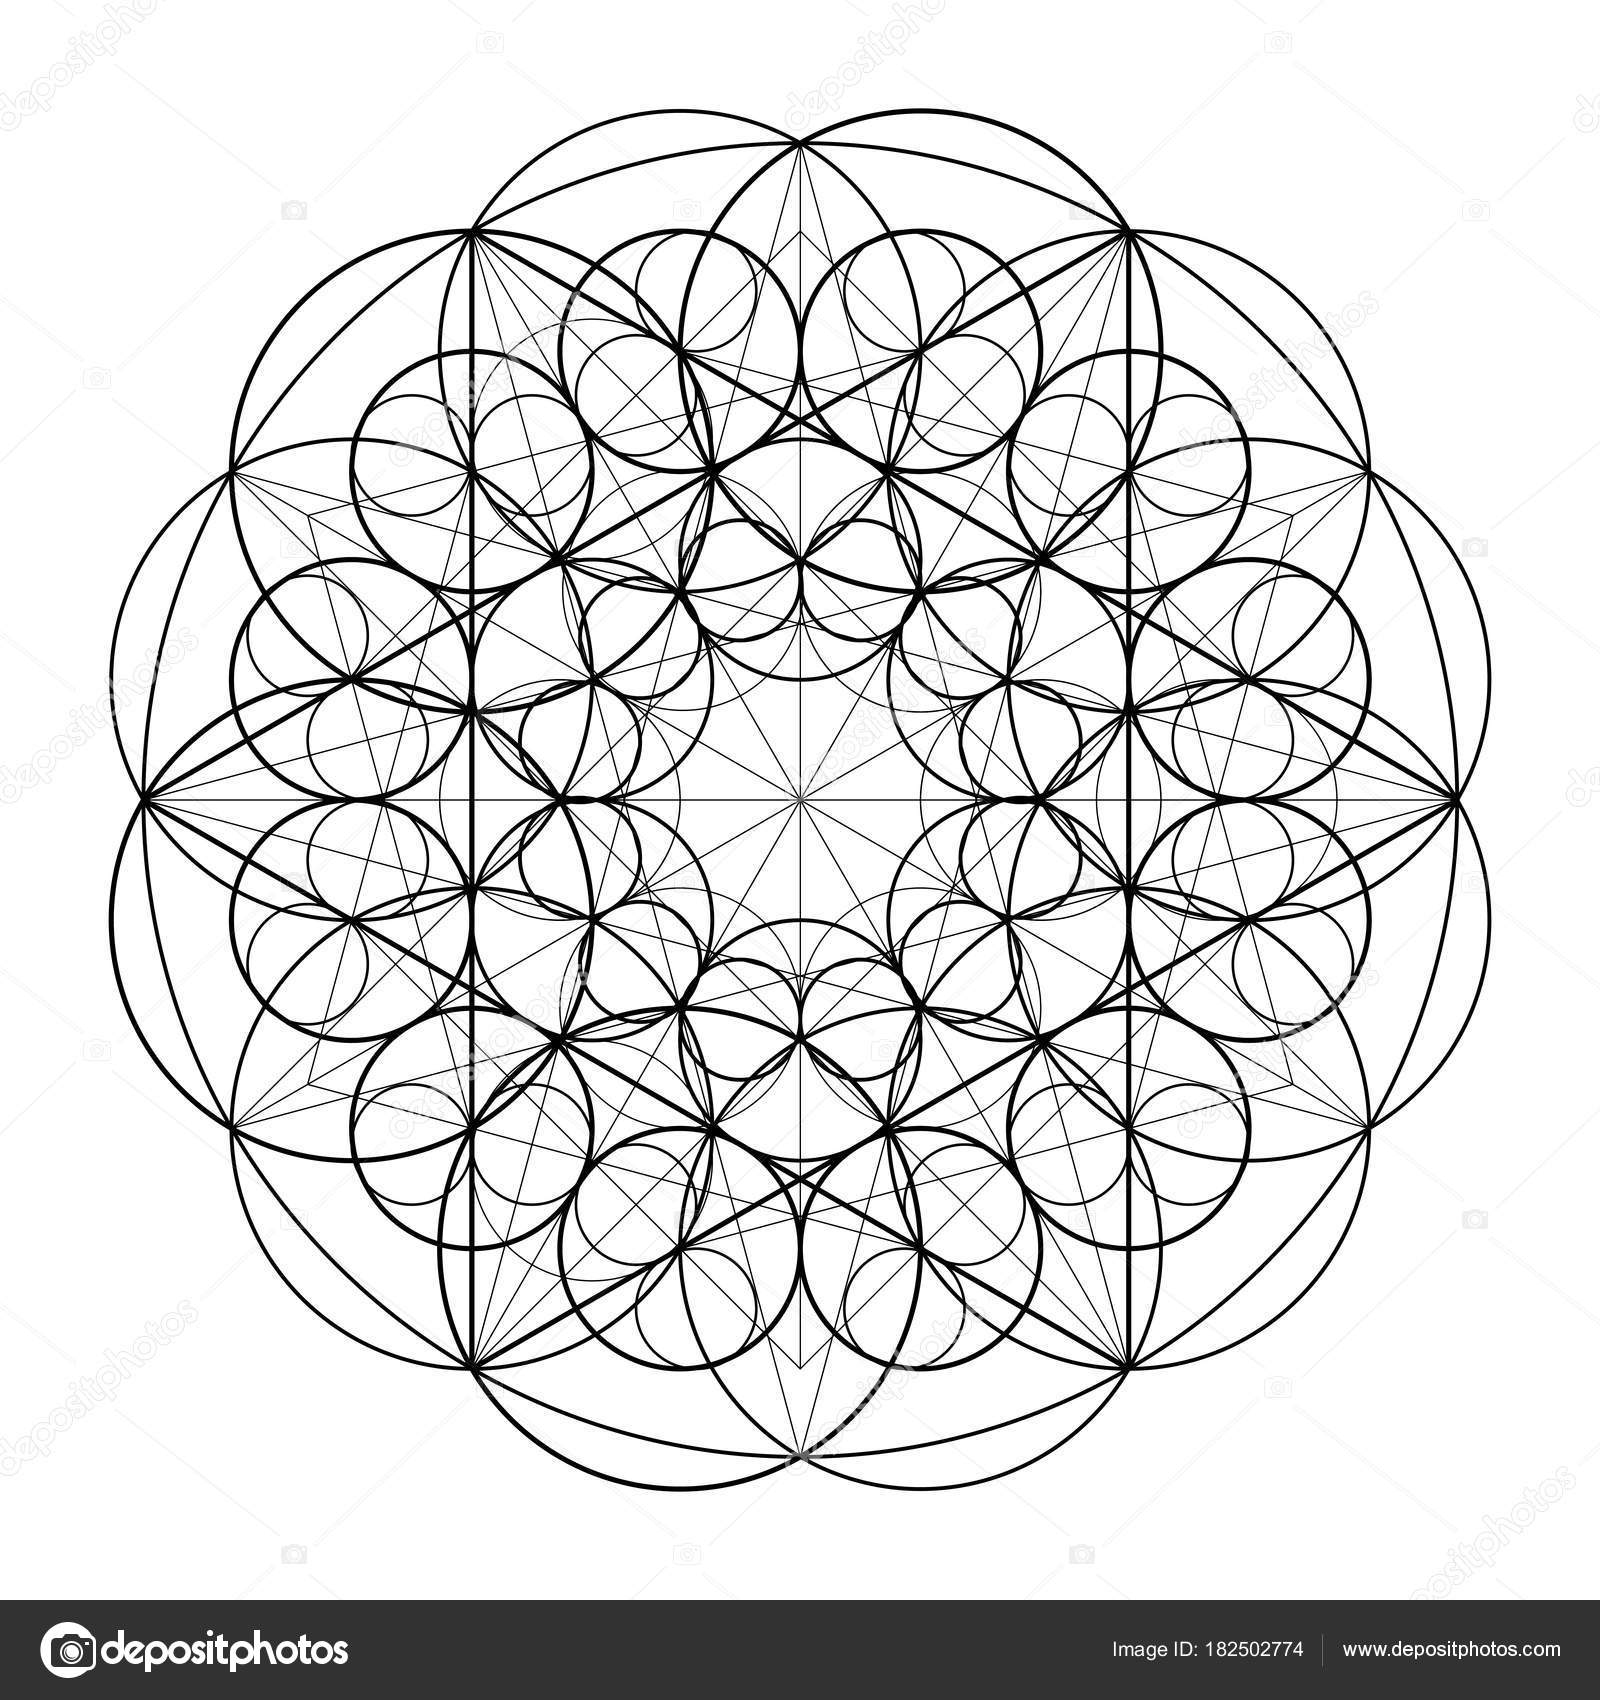 Ornament From Circles Geometric Pattern Based On The